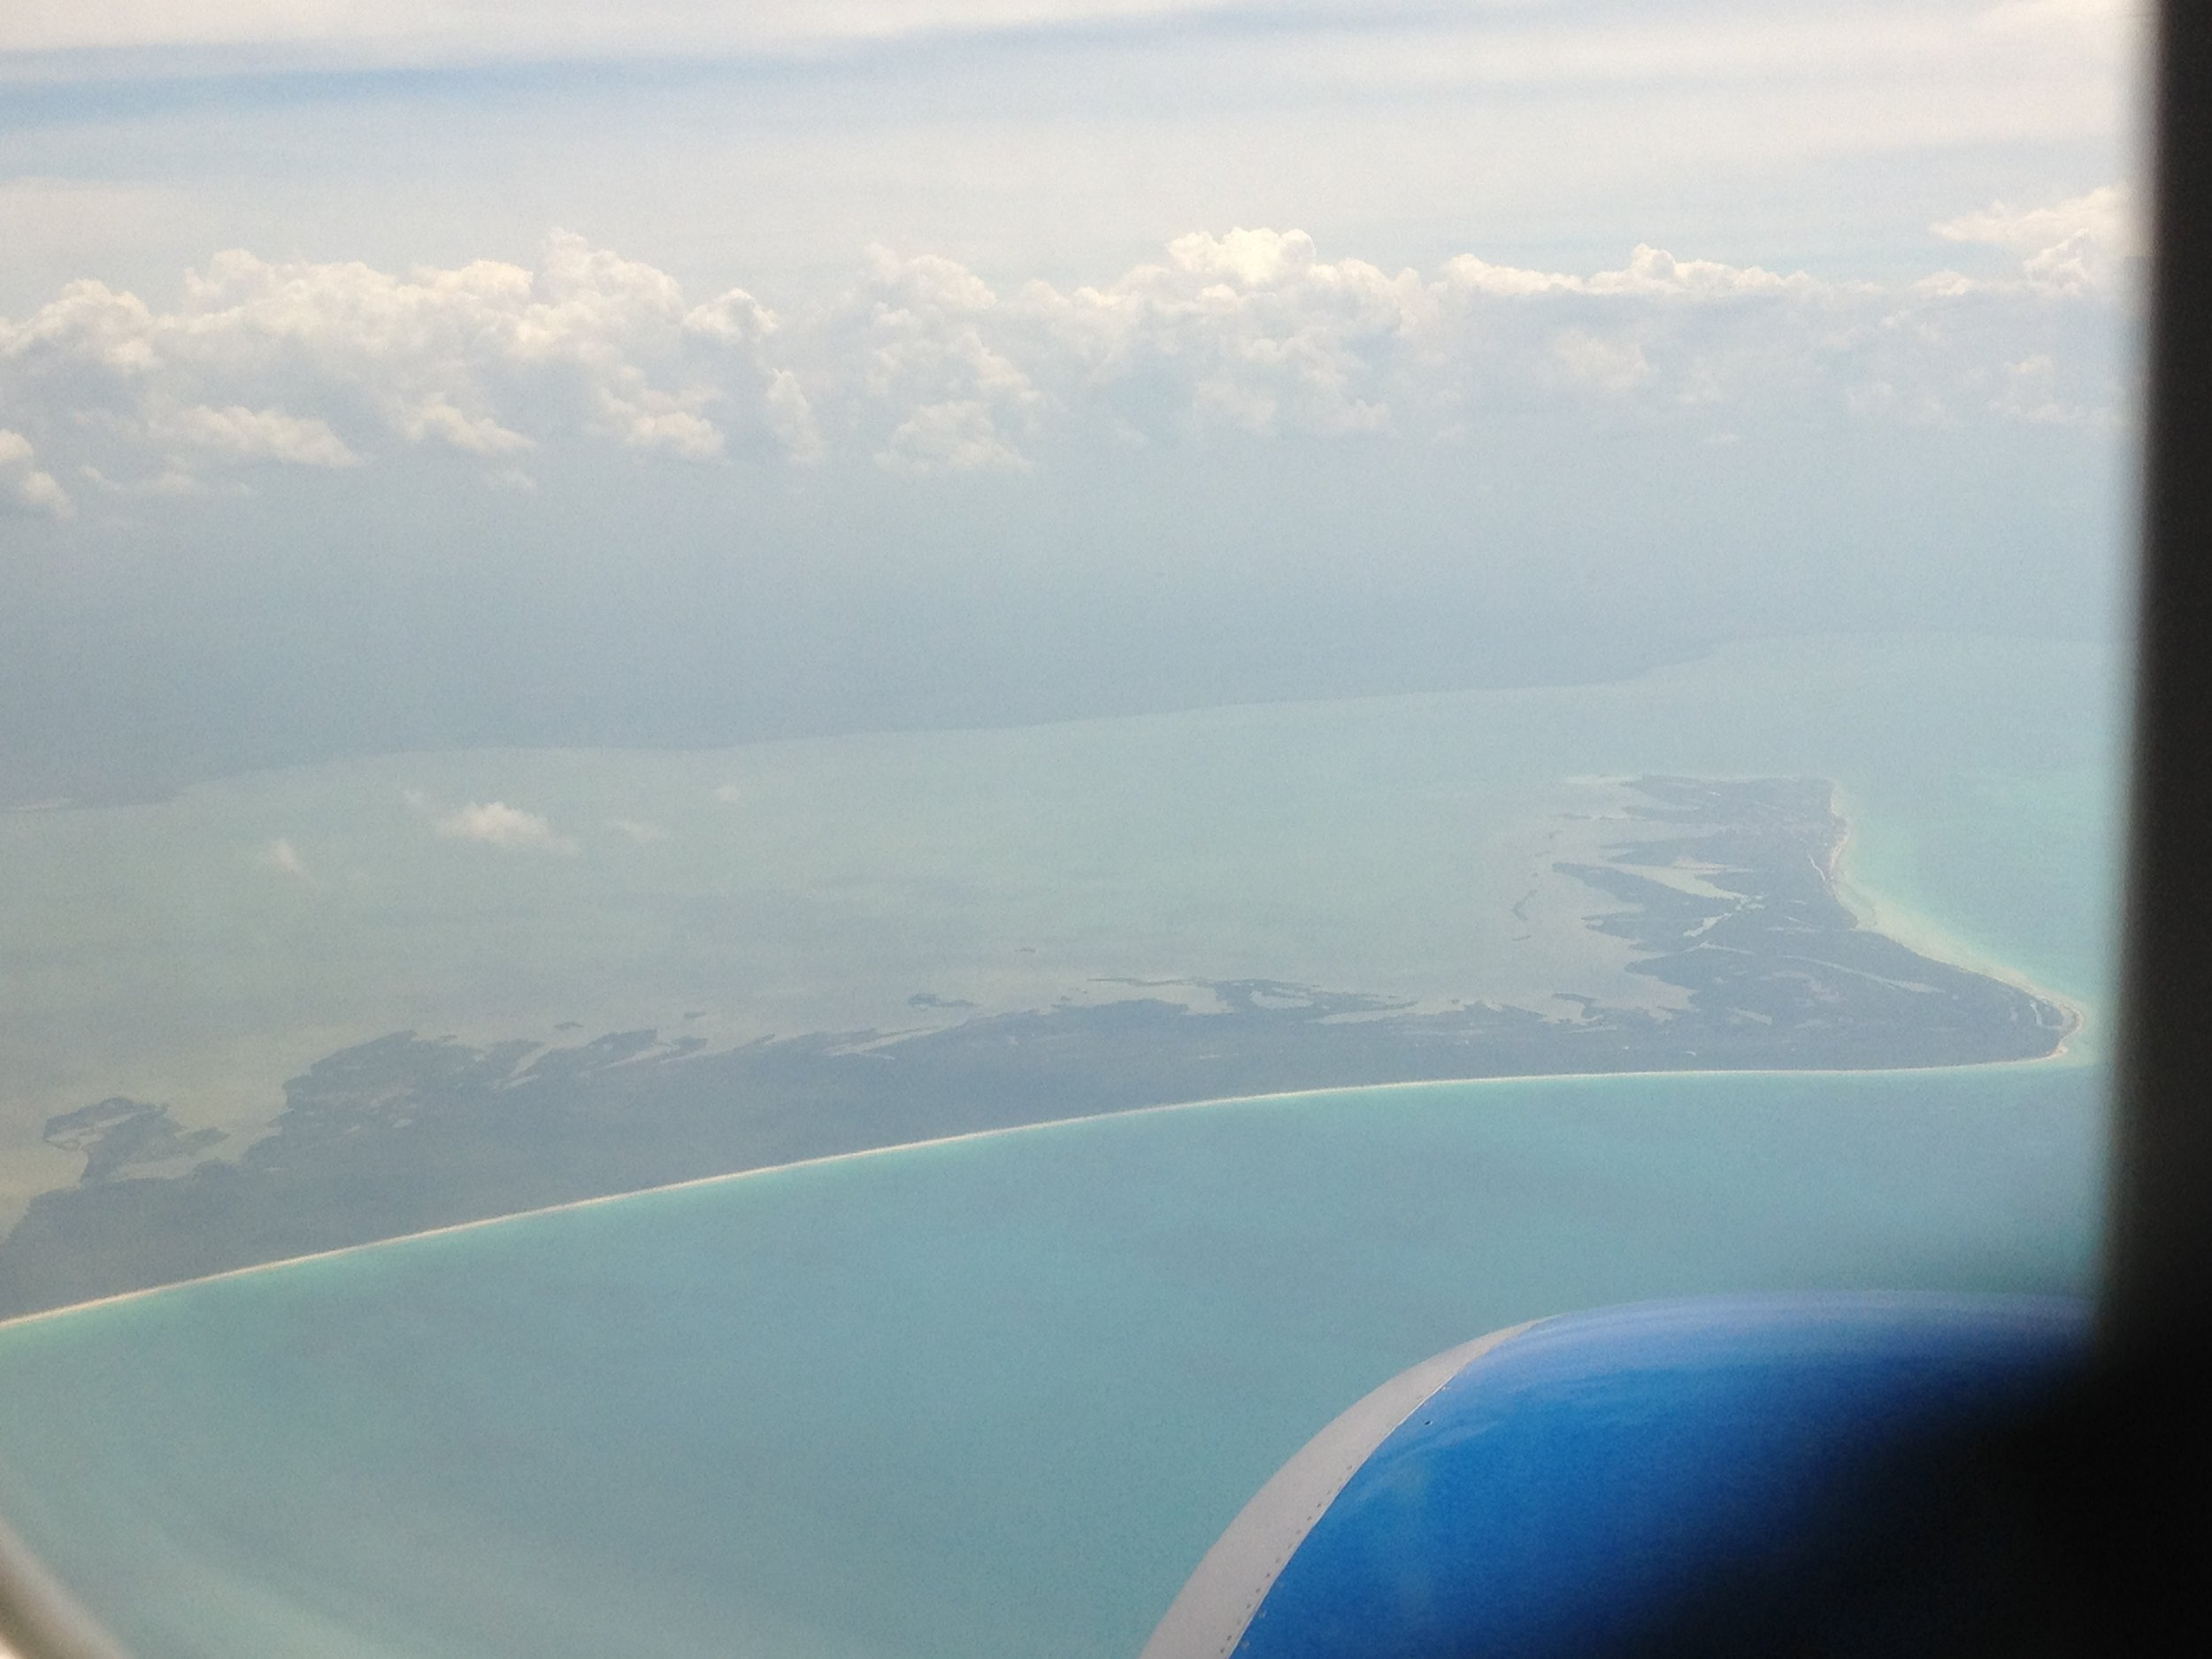 The view from the plane landing at Cancun International Airport...in less than 123 days we'll be right back here!